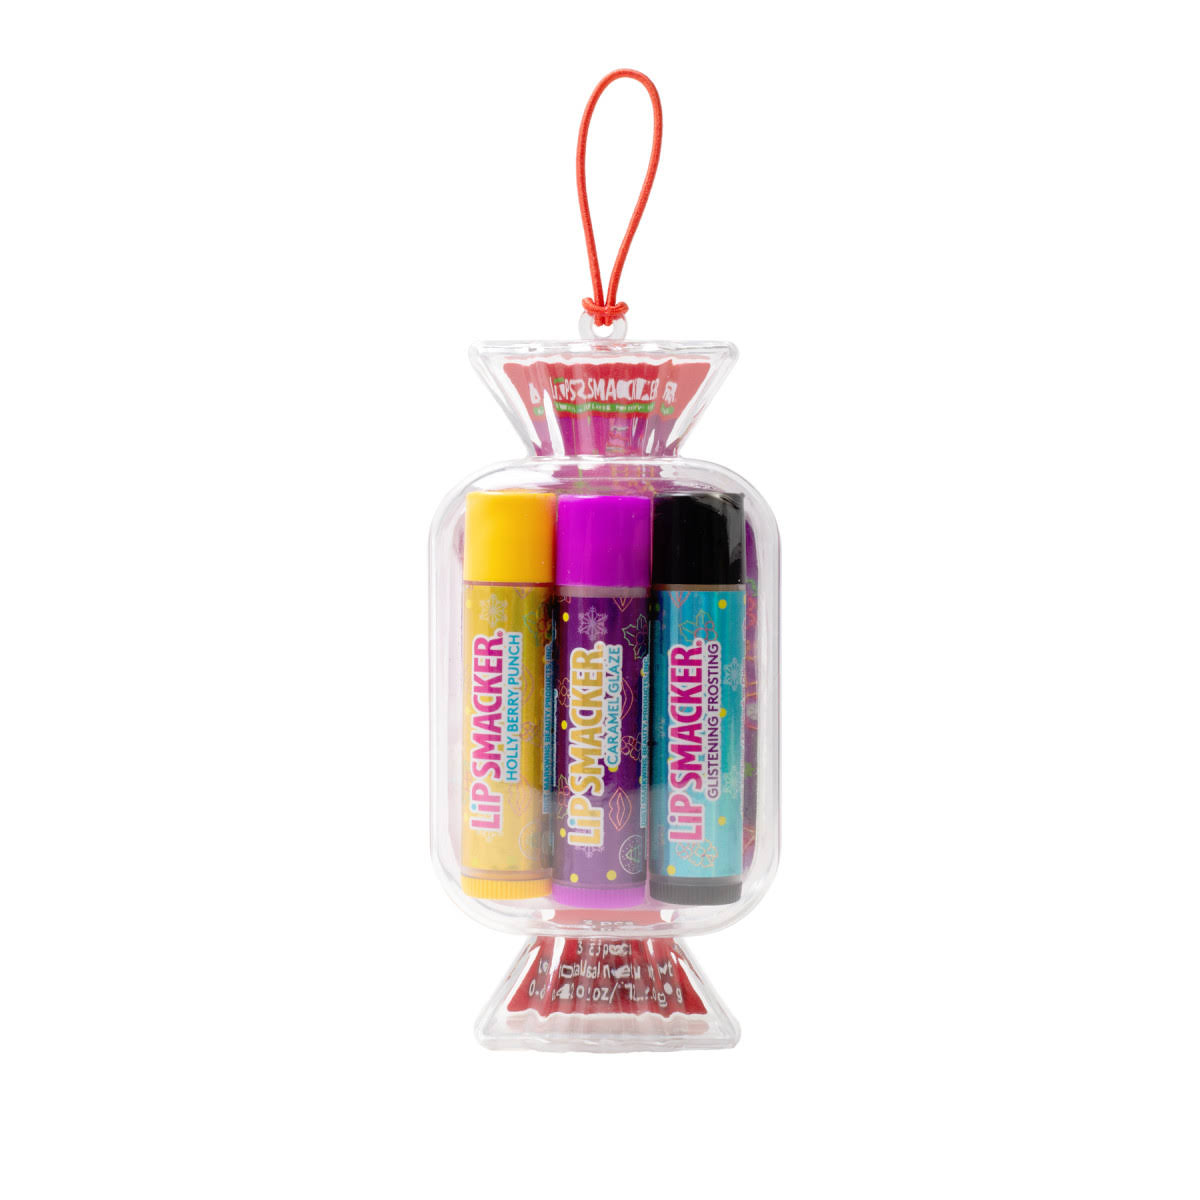 Lip Smacker Original & Best Light & Whippy Lip Balm Gift Set